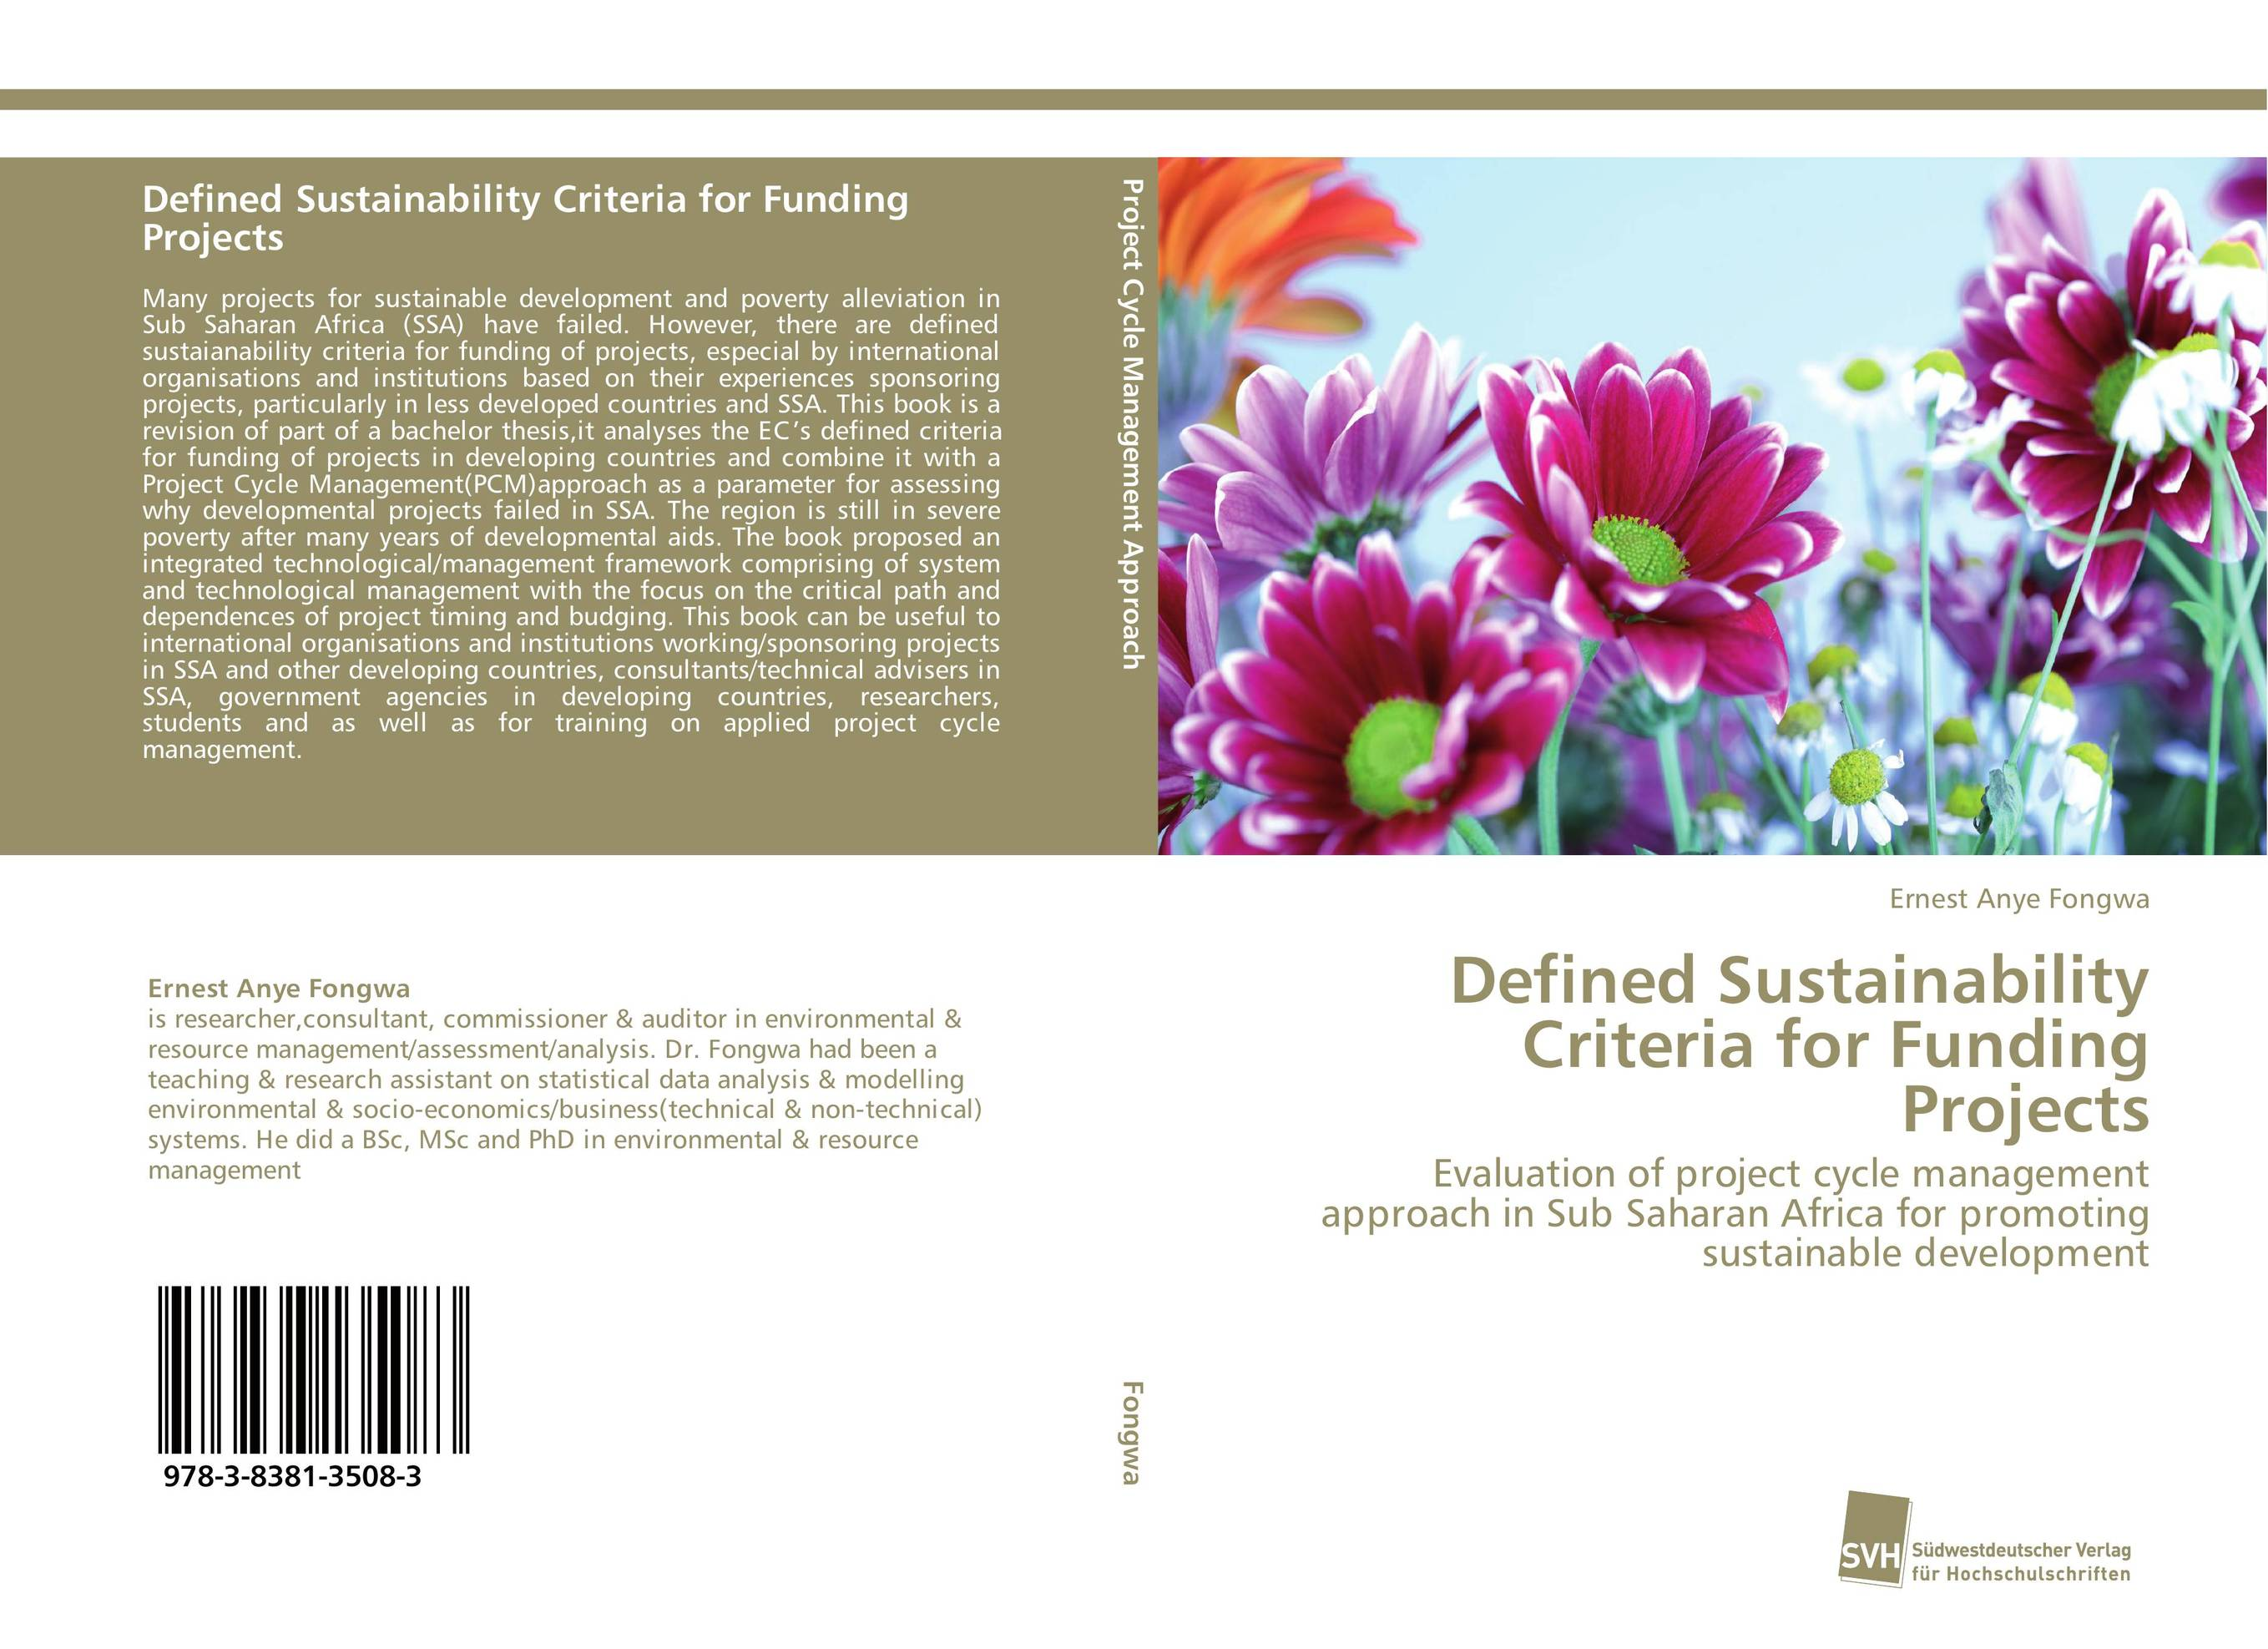 Defined Sustainability Criteria for Funding Projects a decision support tool for library book inventory management